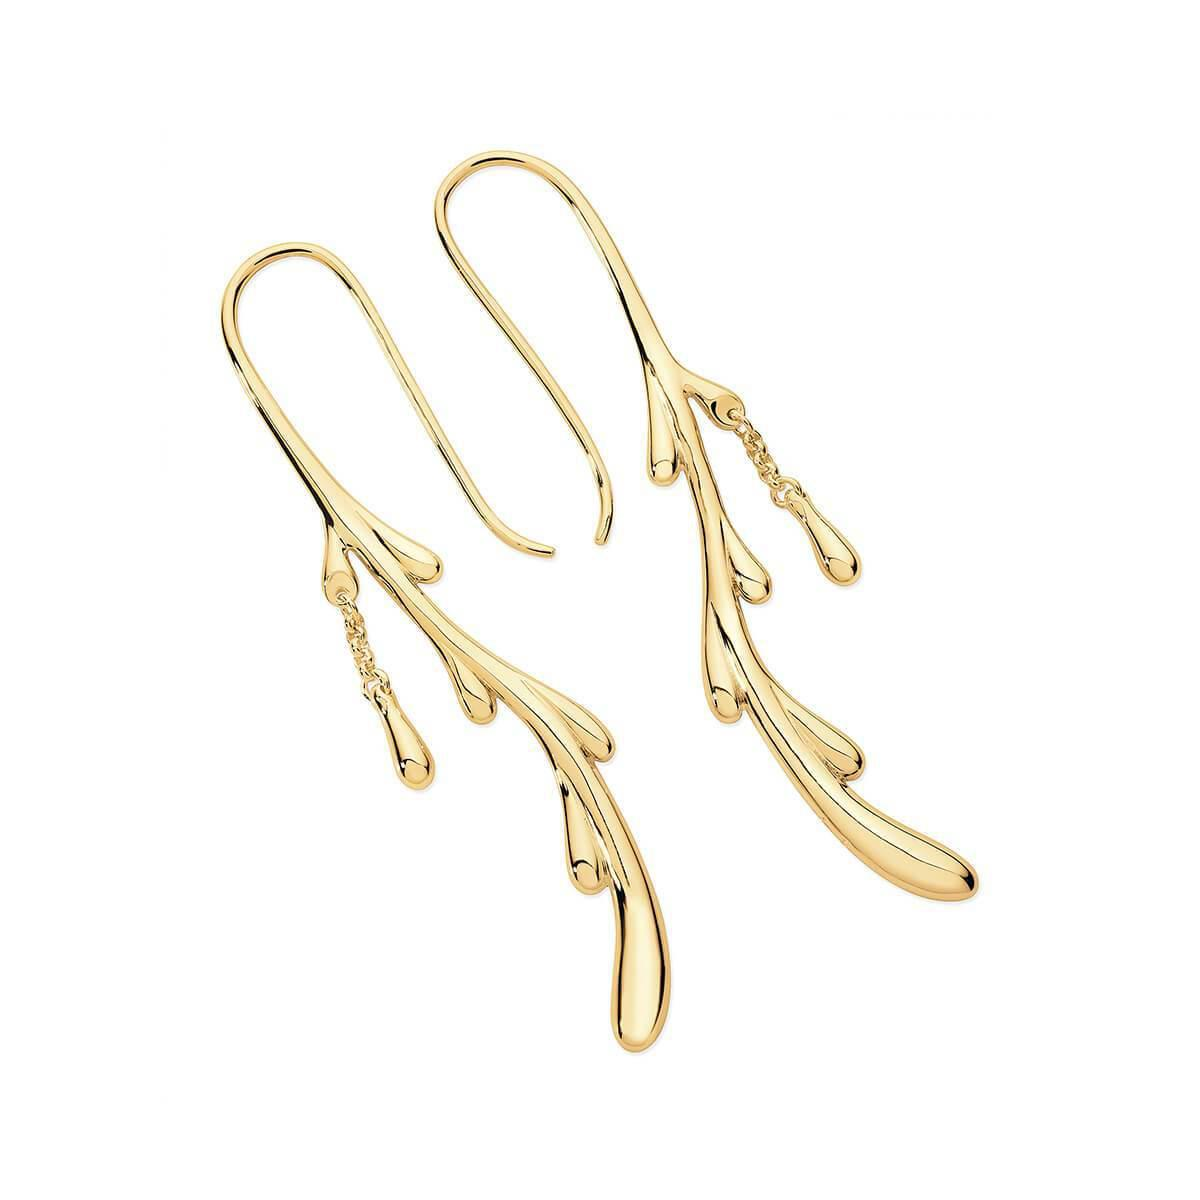 Lucy Quartermaine Solid Drop Earrings Gold Plated aEEyaIVHvM